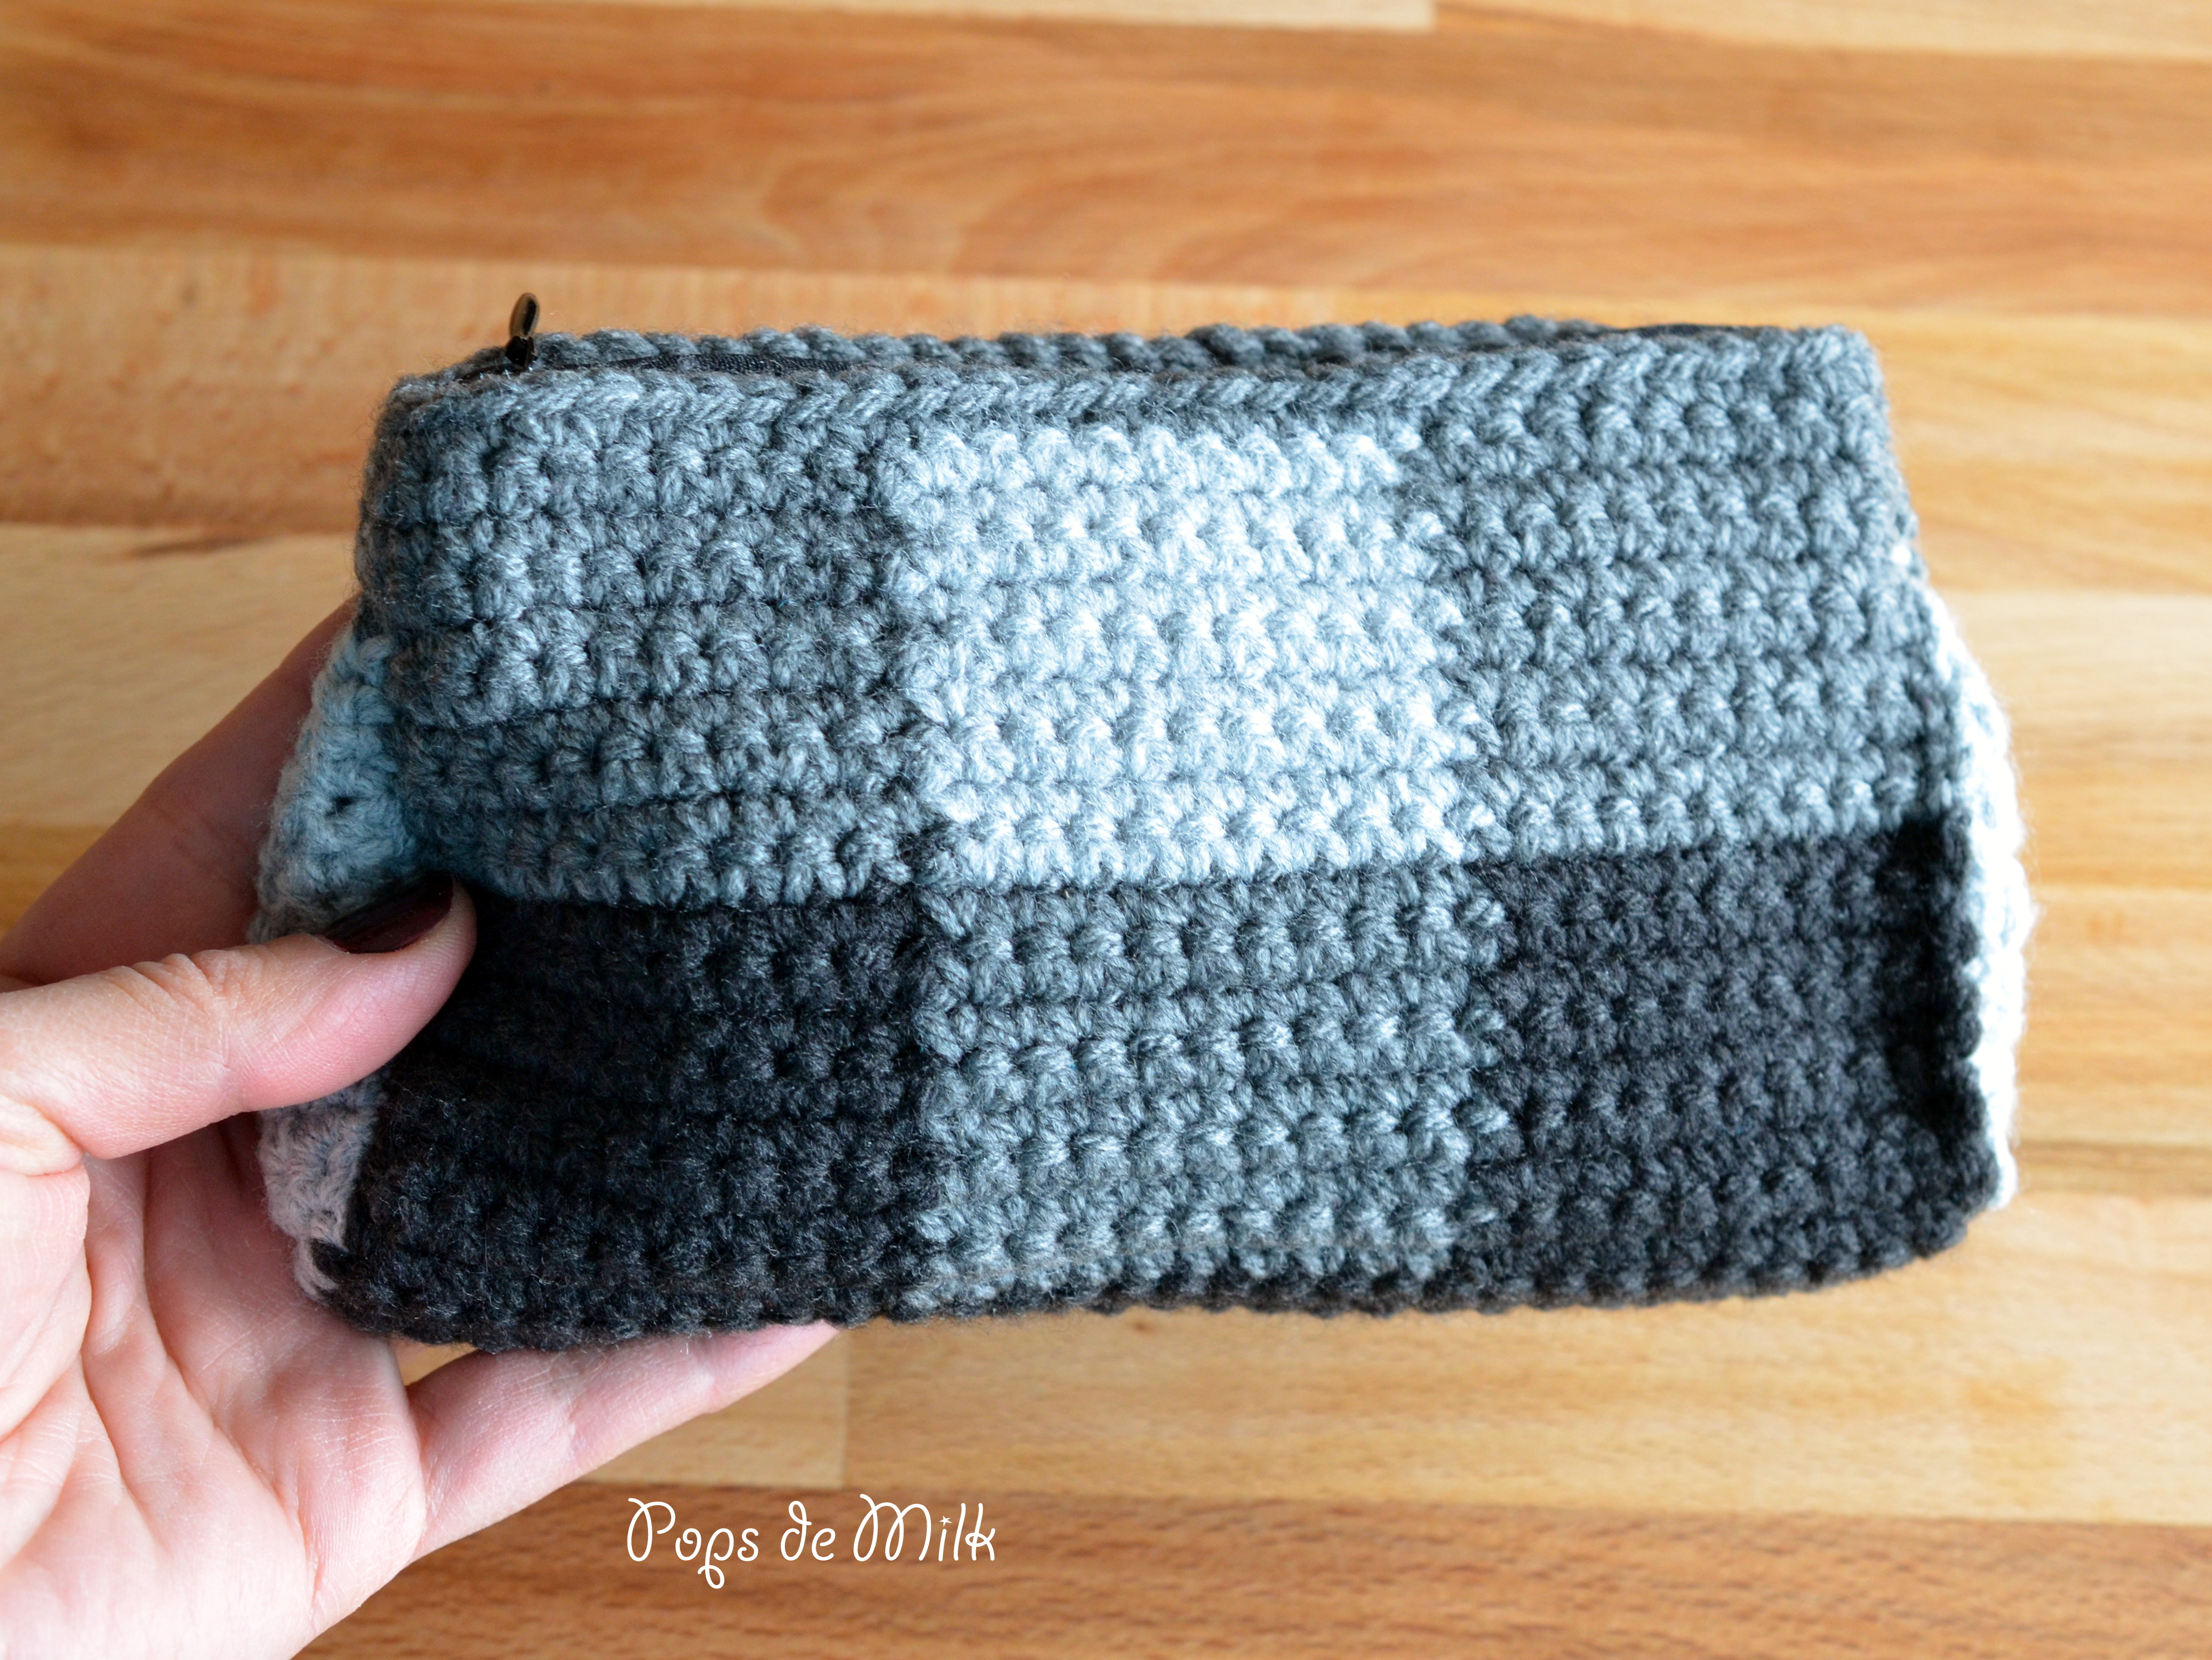 Free Crochet Patterns For Makeup Bags : Crochet